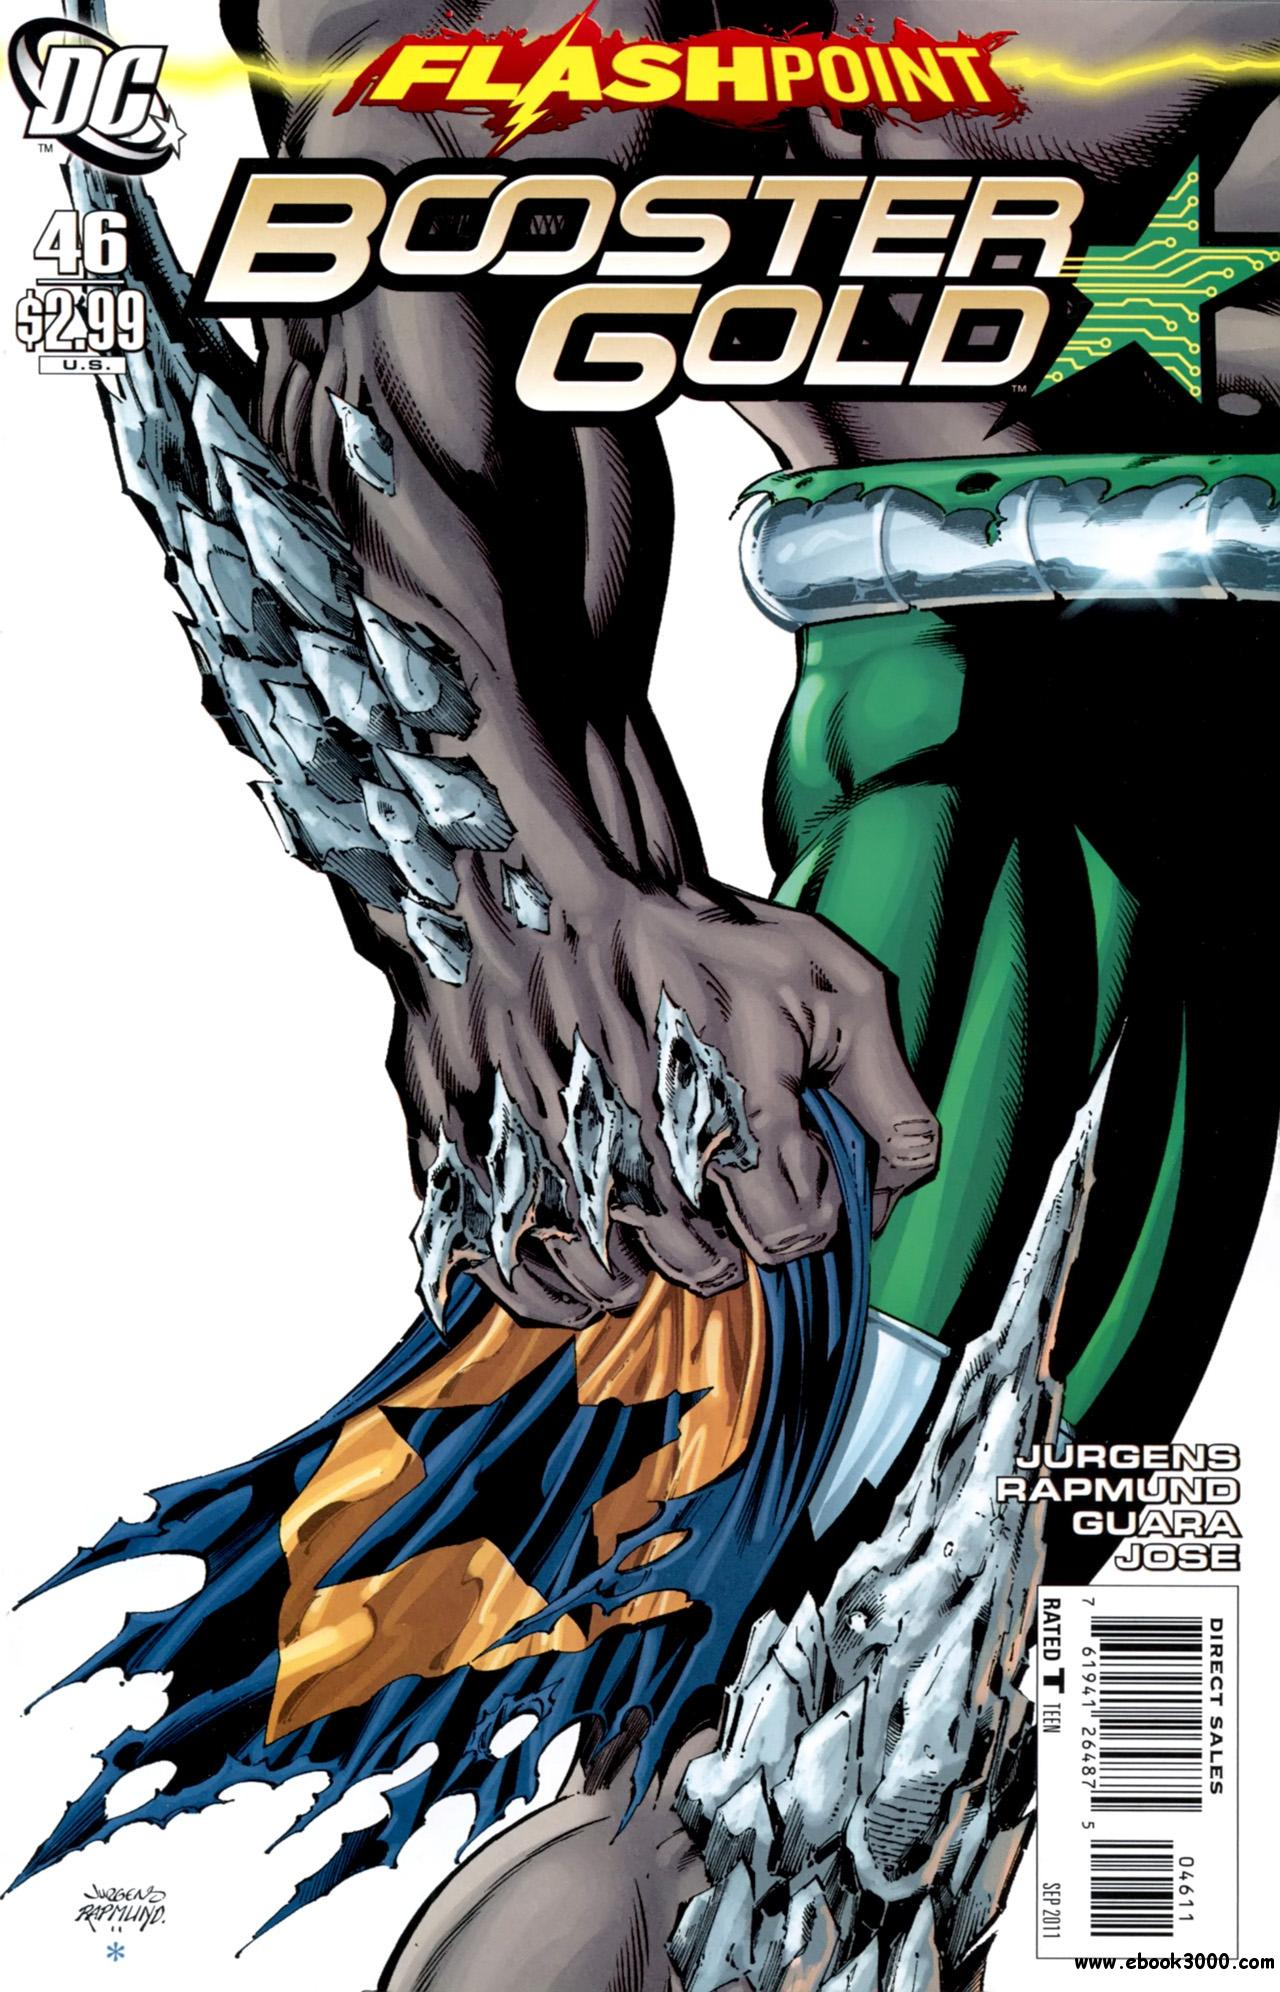 Booster Gold #46 (2011) free download